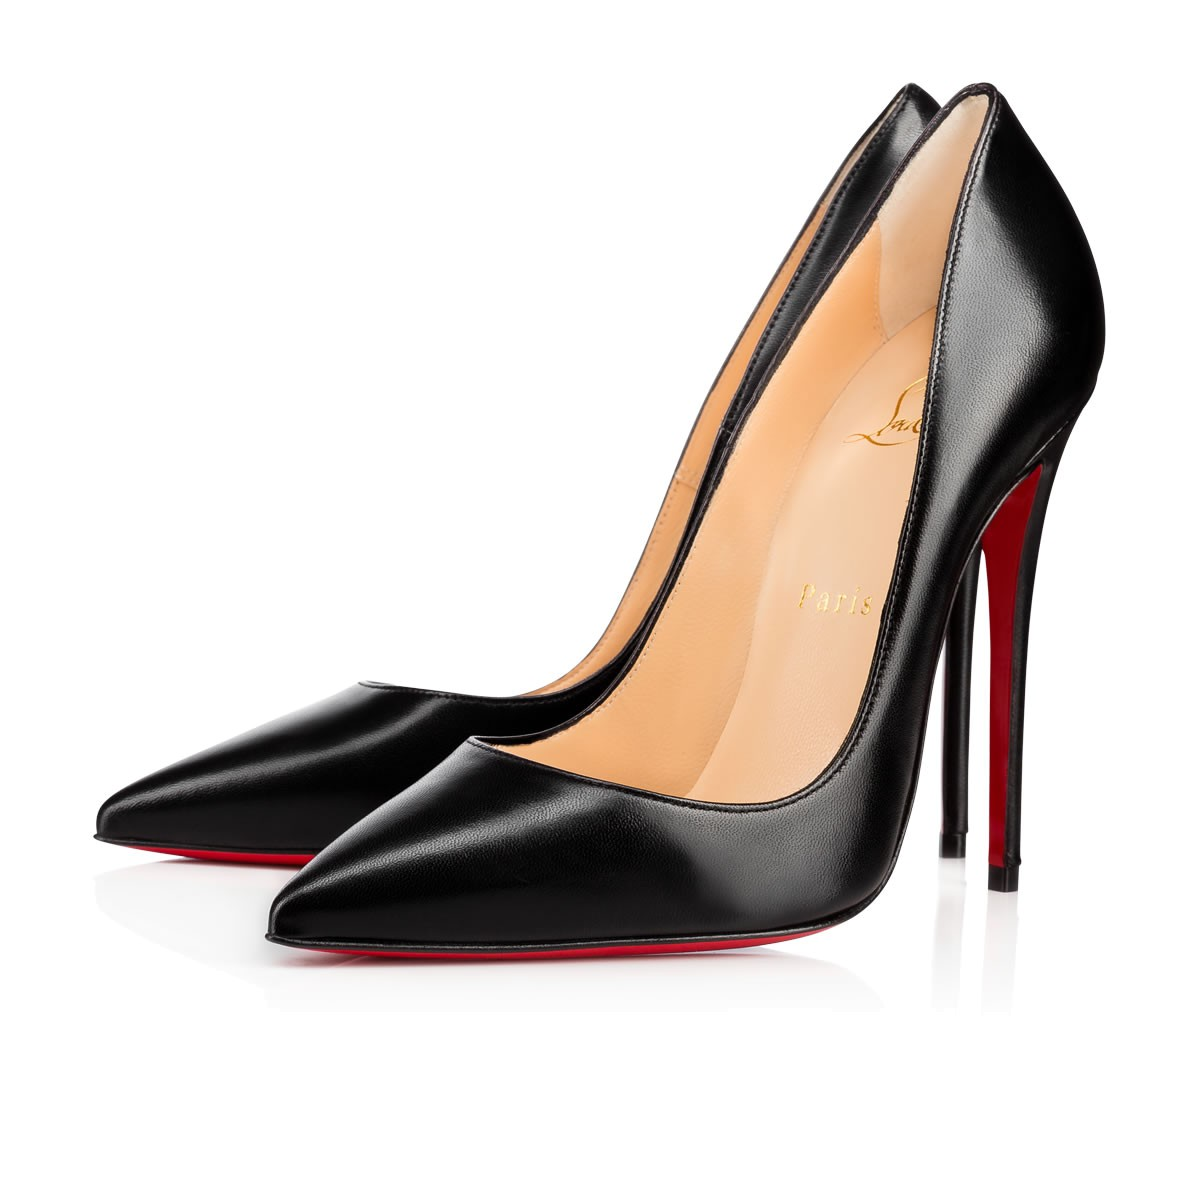 Image result for louboutin